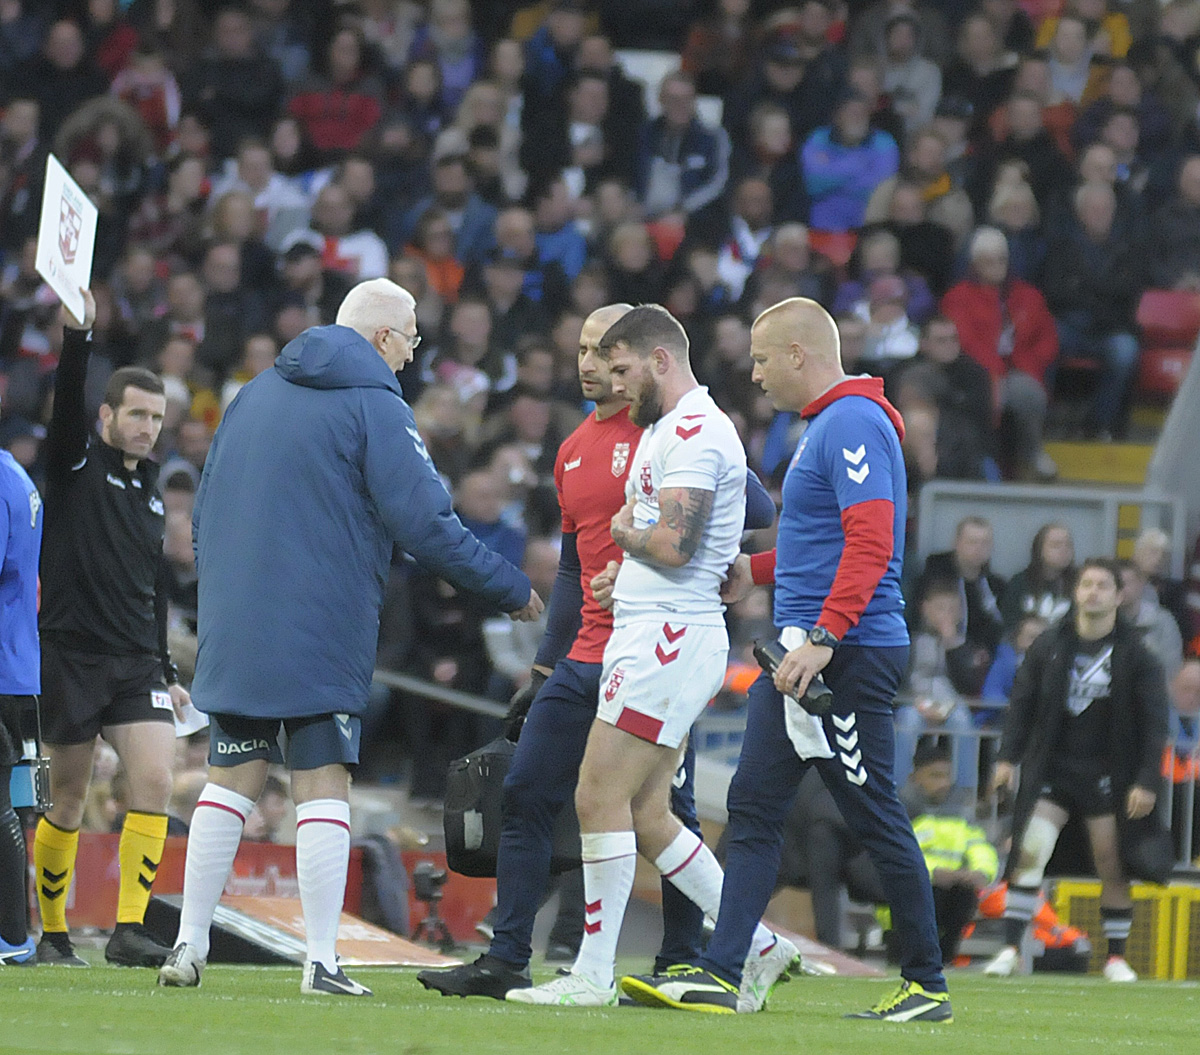 Daryl Clark is helped off by the England medical team. Picture by Mike Boden